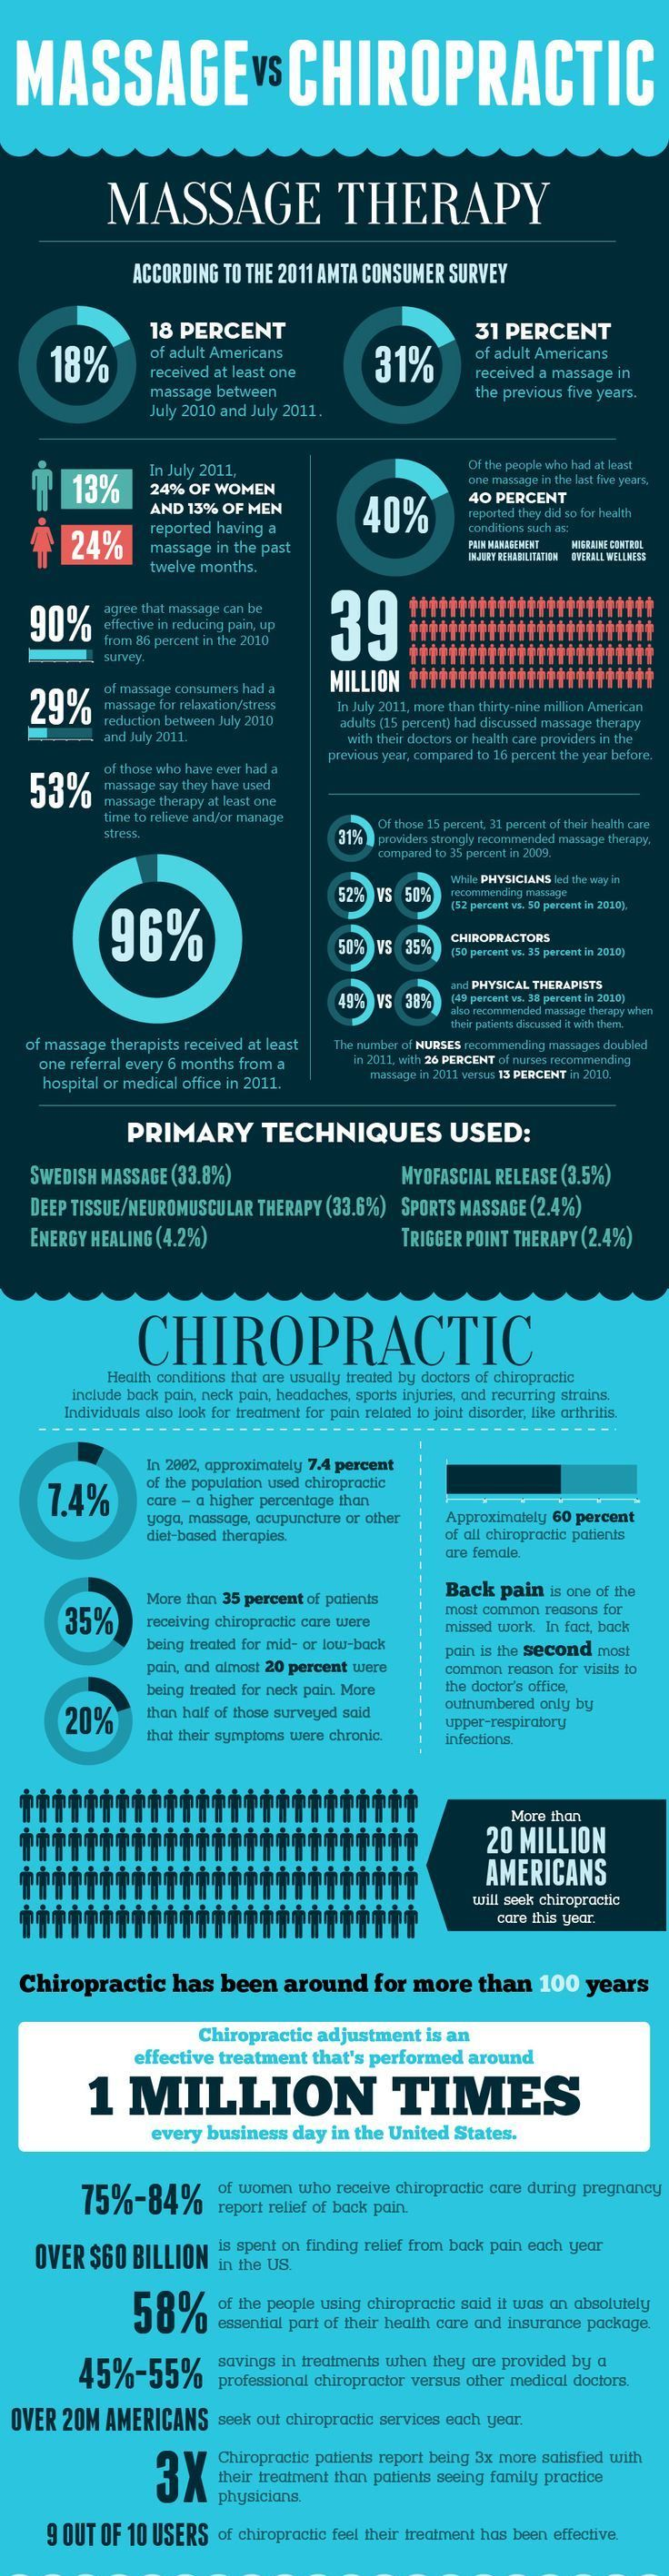 Chiropractic therapy and massage, shows some true facts about Chiropractic care over massage.